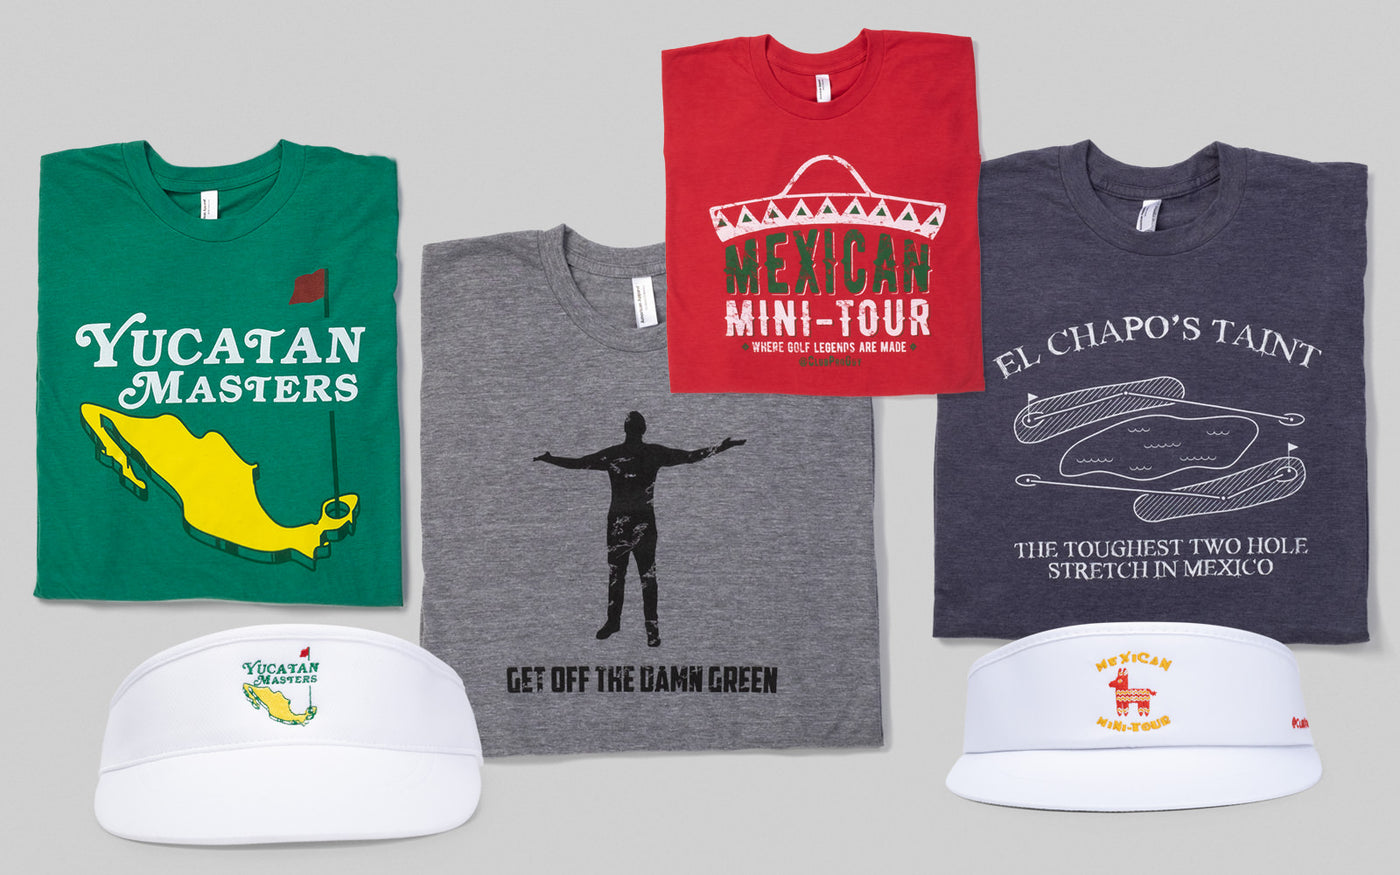 The Official Site of Club Pro Guy, Mexican Mini-Tour Legend